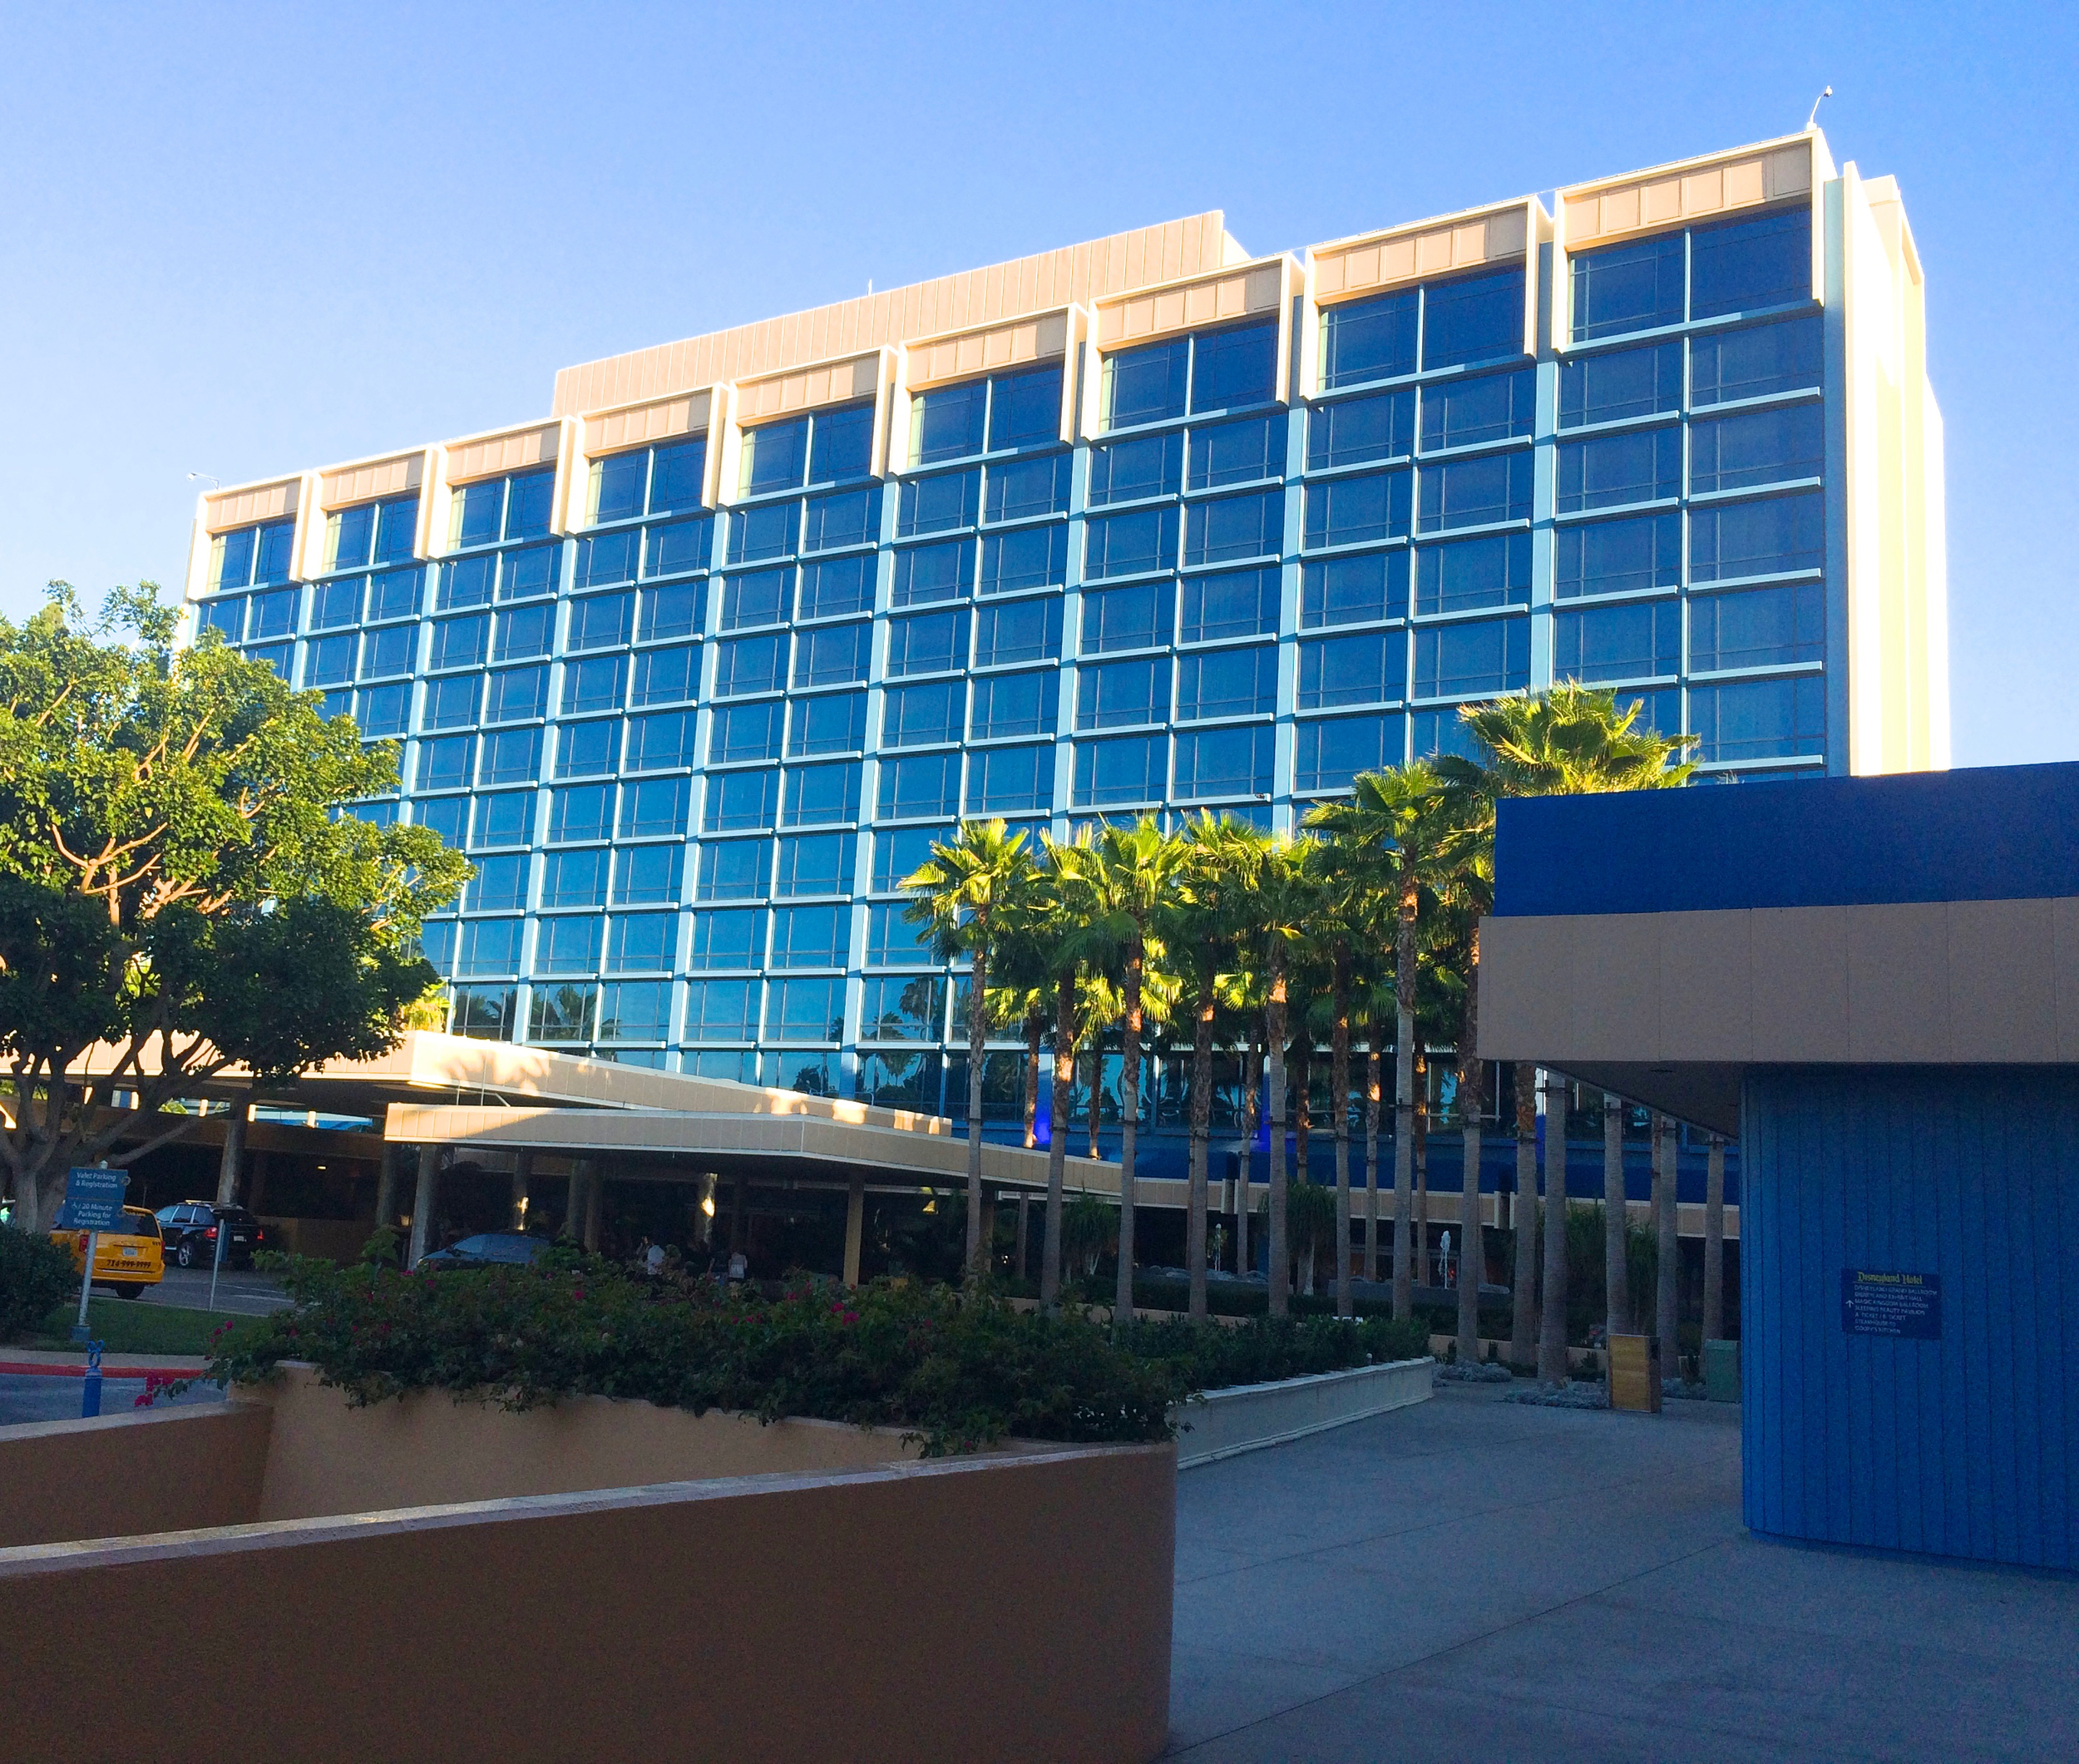 disneyland-hotel-fantasyland-tower.jpg